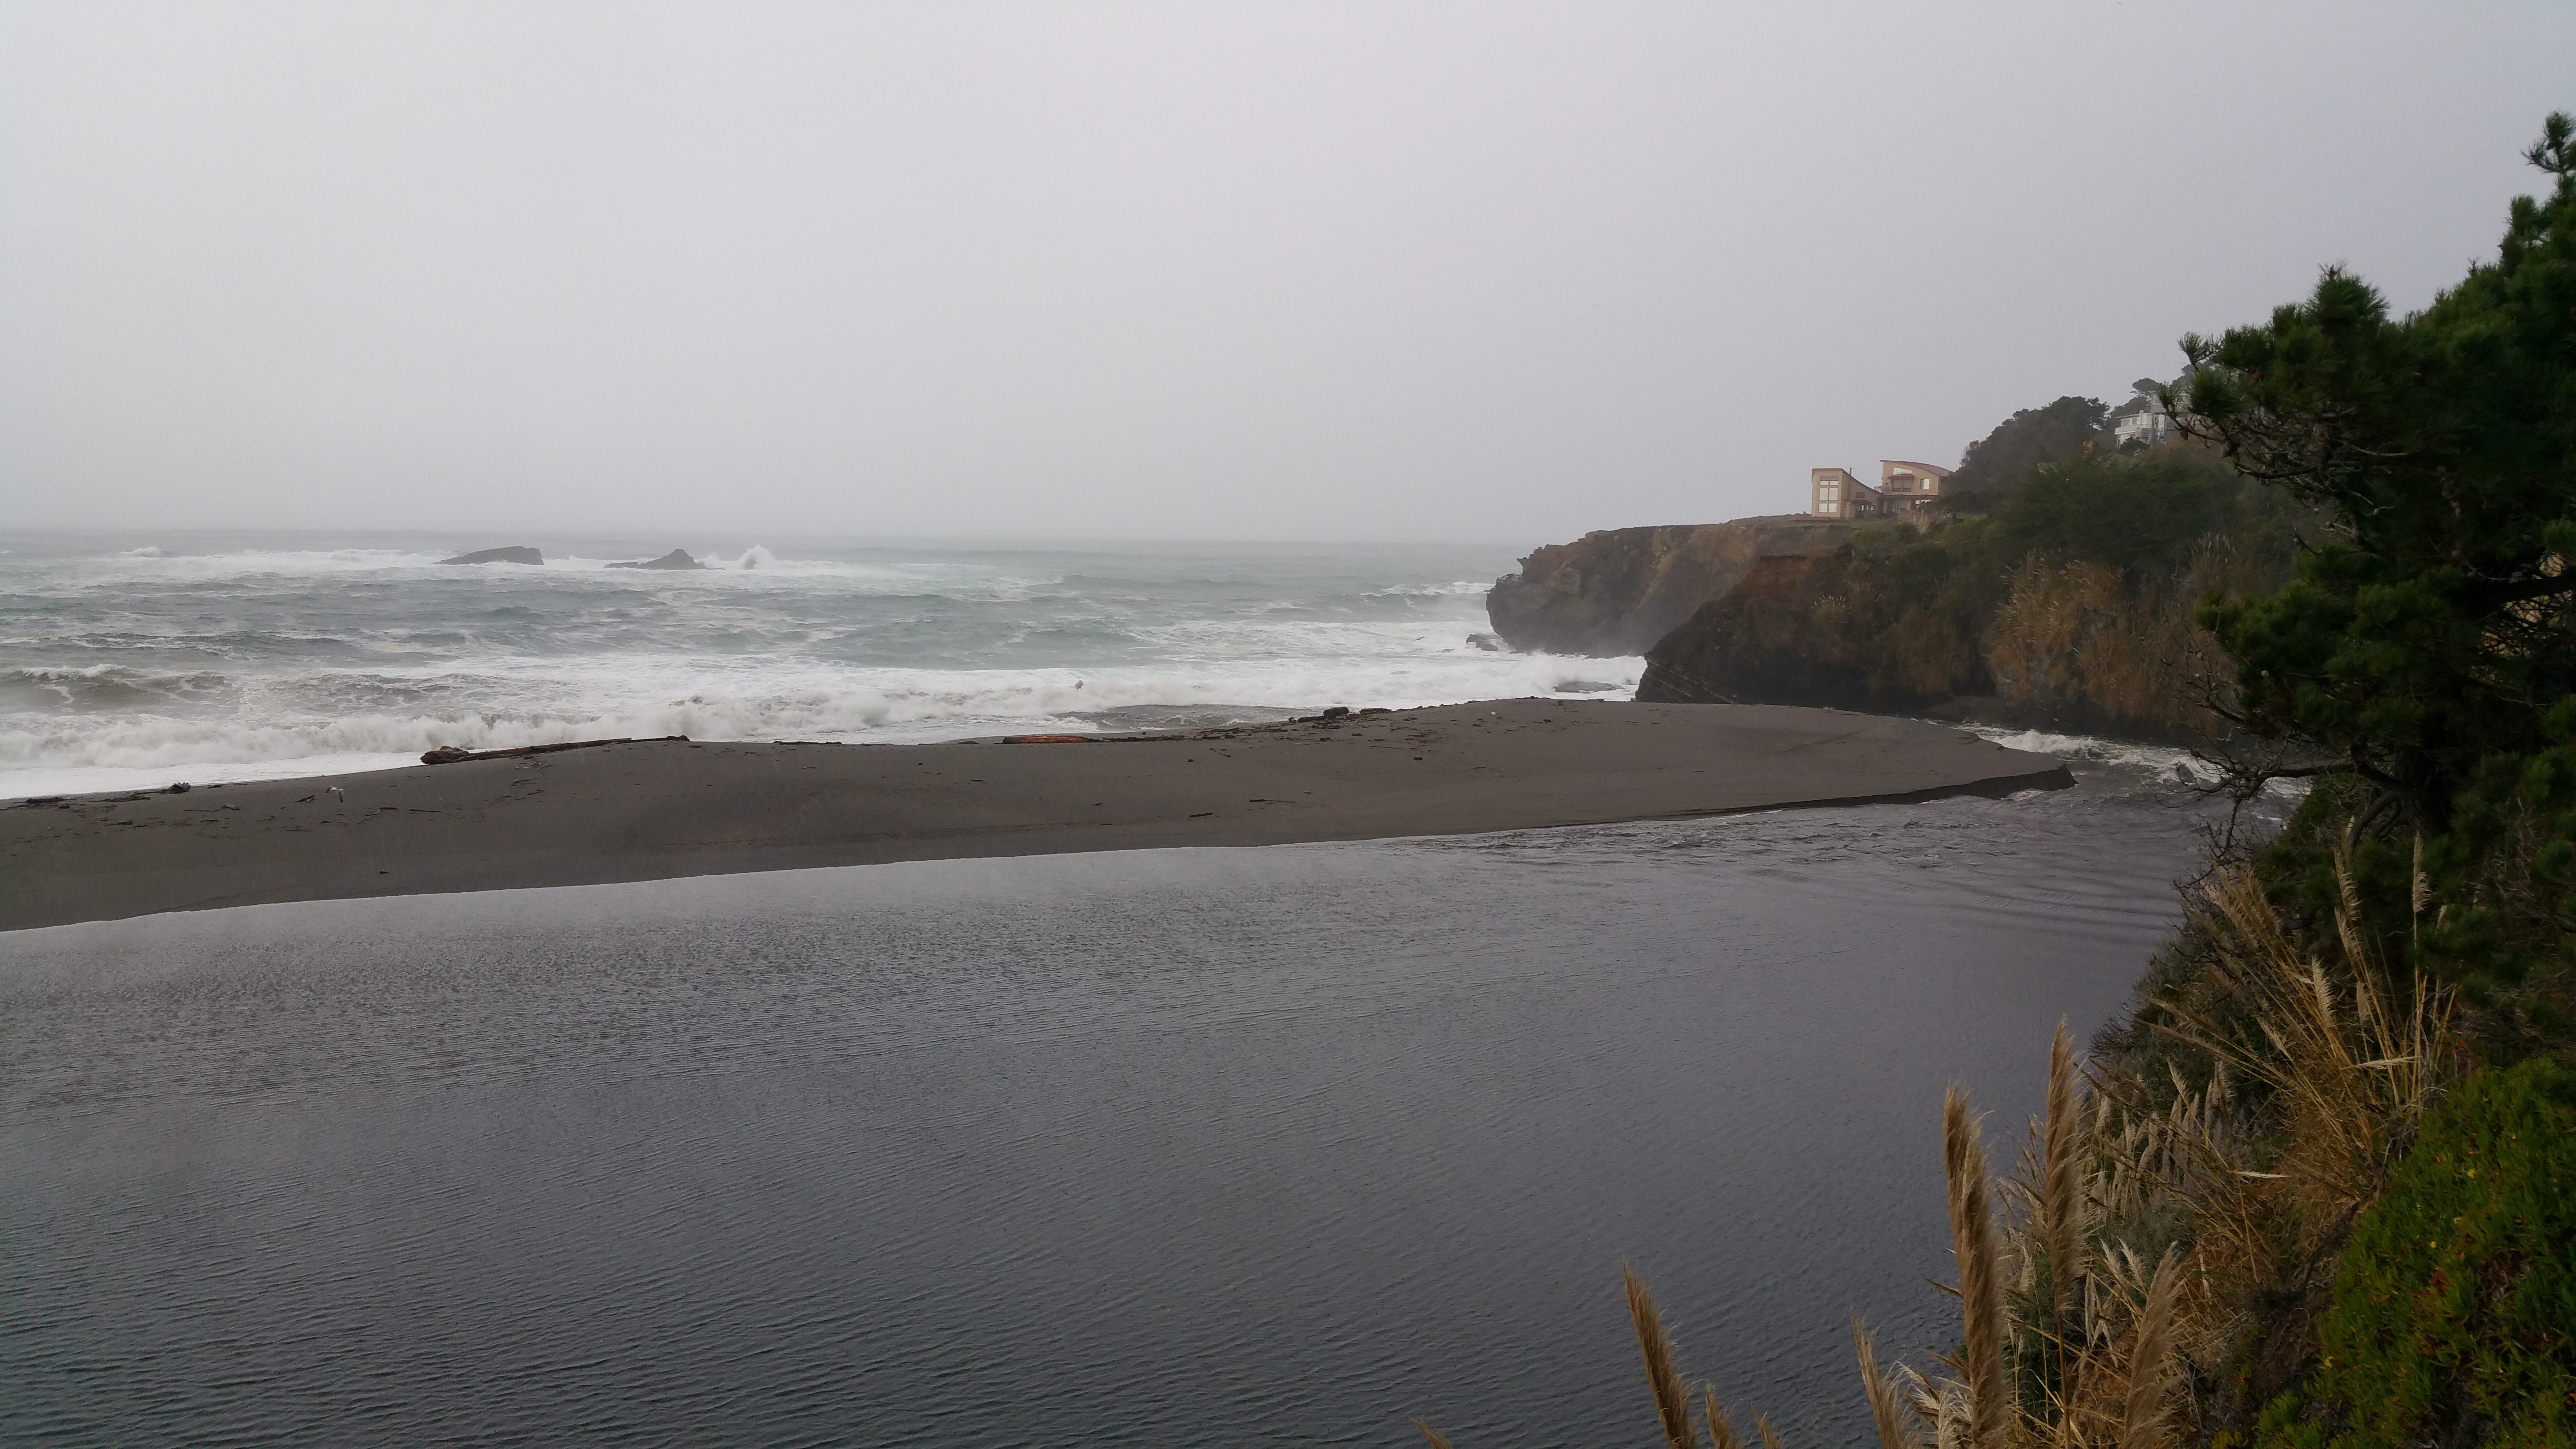 The Gualala River broke through the sandbar on Thursday, December 10, 2015 around noon. It opened at the very north end of the estuary.